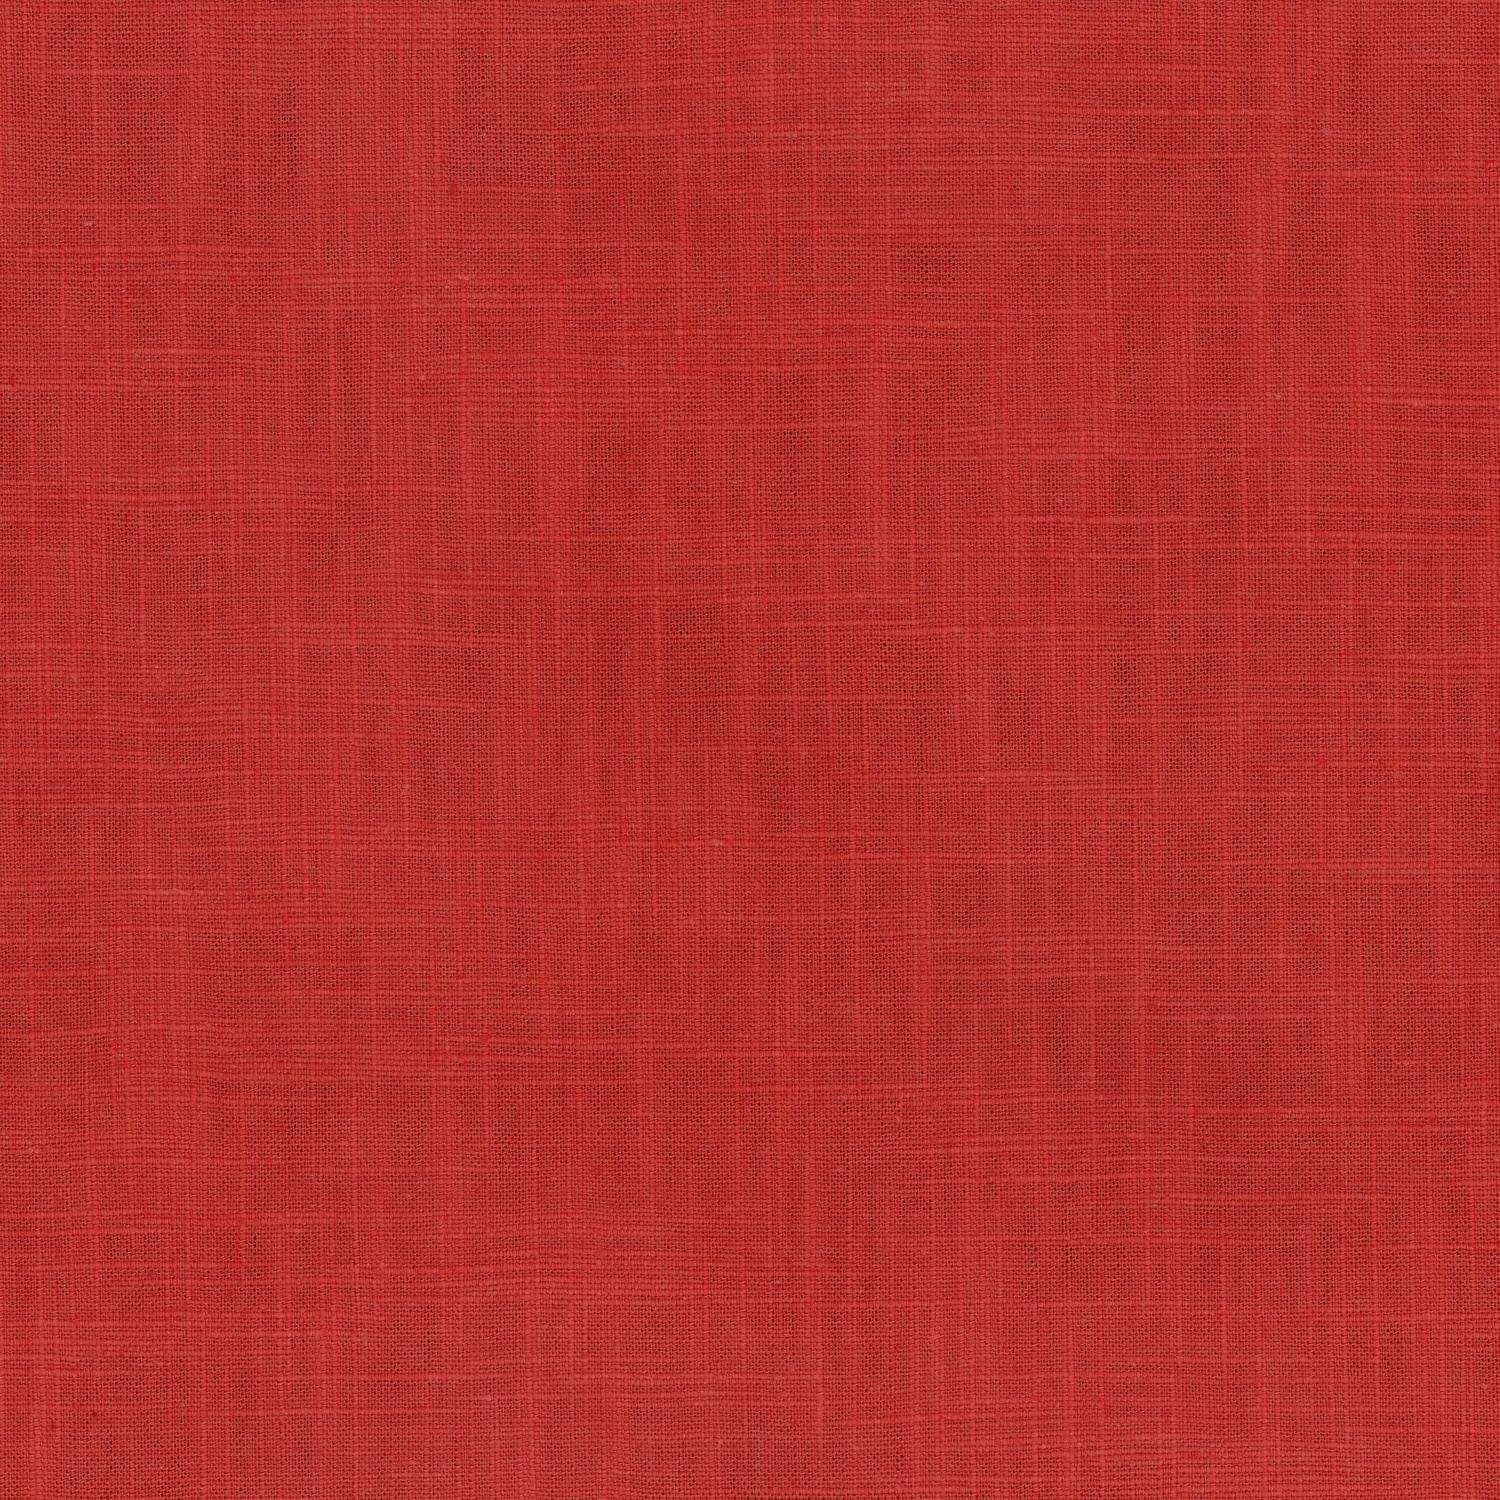 P/K Lifestyles Lightweight Decor Fabric 54\u0022-Derby Lightweight Decor/Ruby